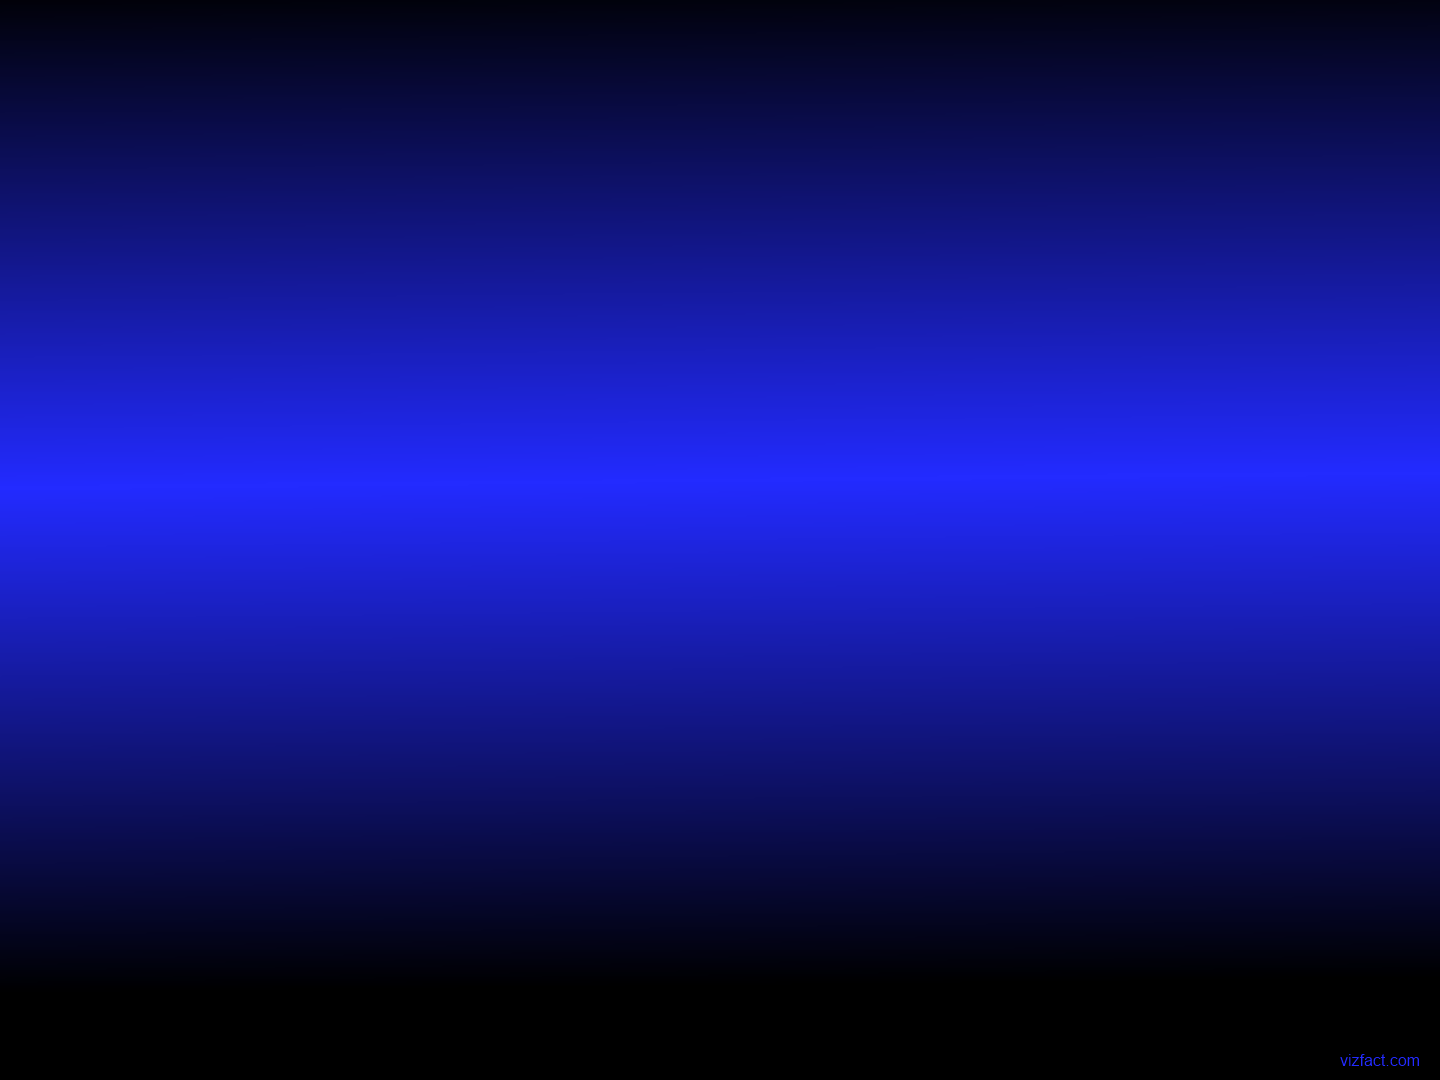 Nothing found for Blue black gradient desktop background 1440x1080